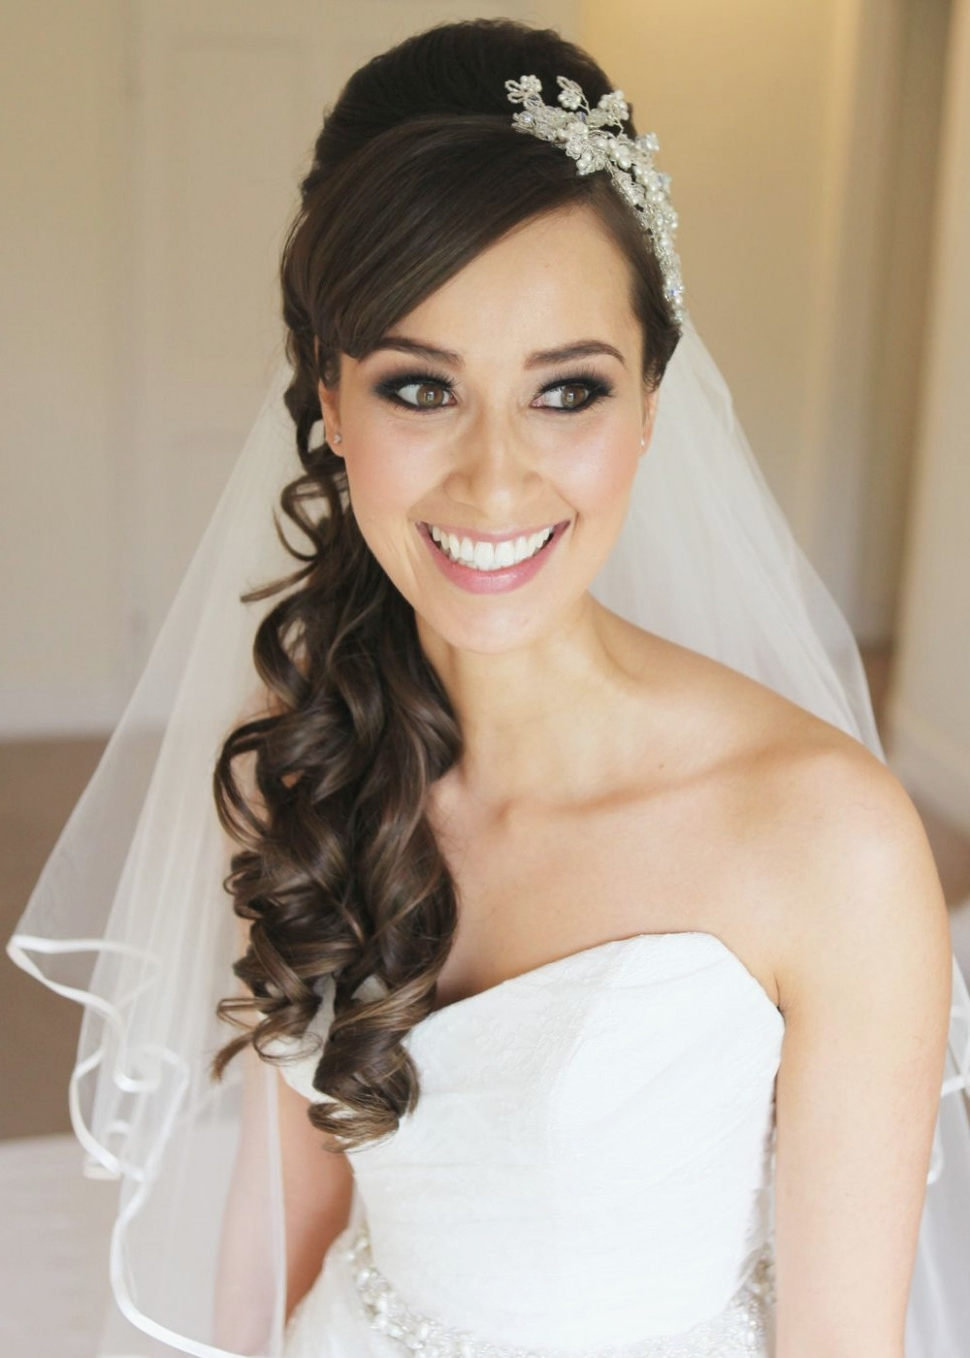 13 Unexpected Ways Wedding Hair With Veil And Tiara Can With Regard To Recent Wedding Hairstyles Down With Tiara (View 1 of 15)